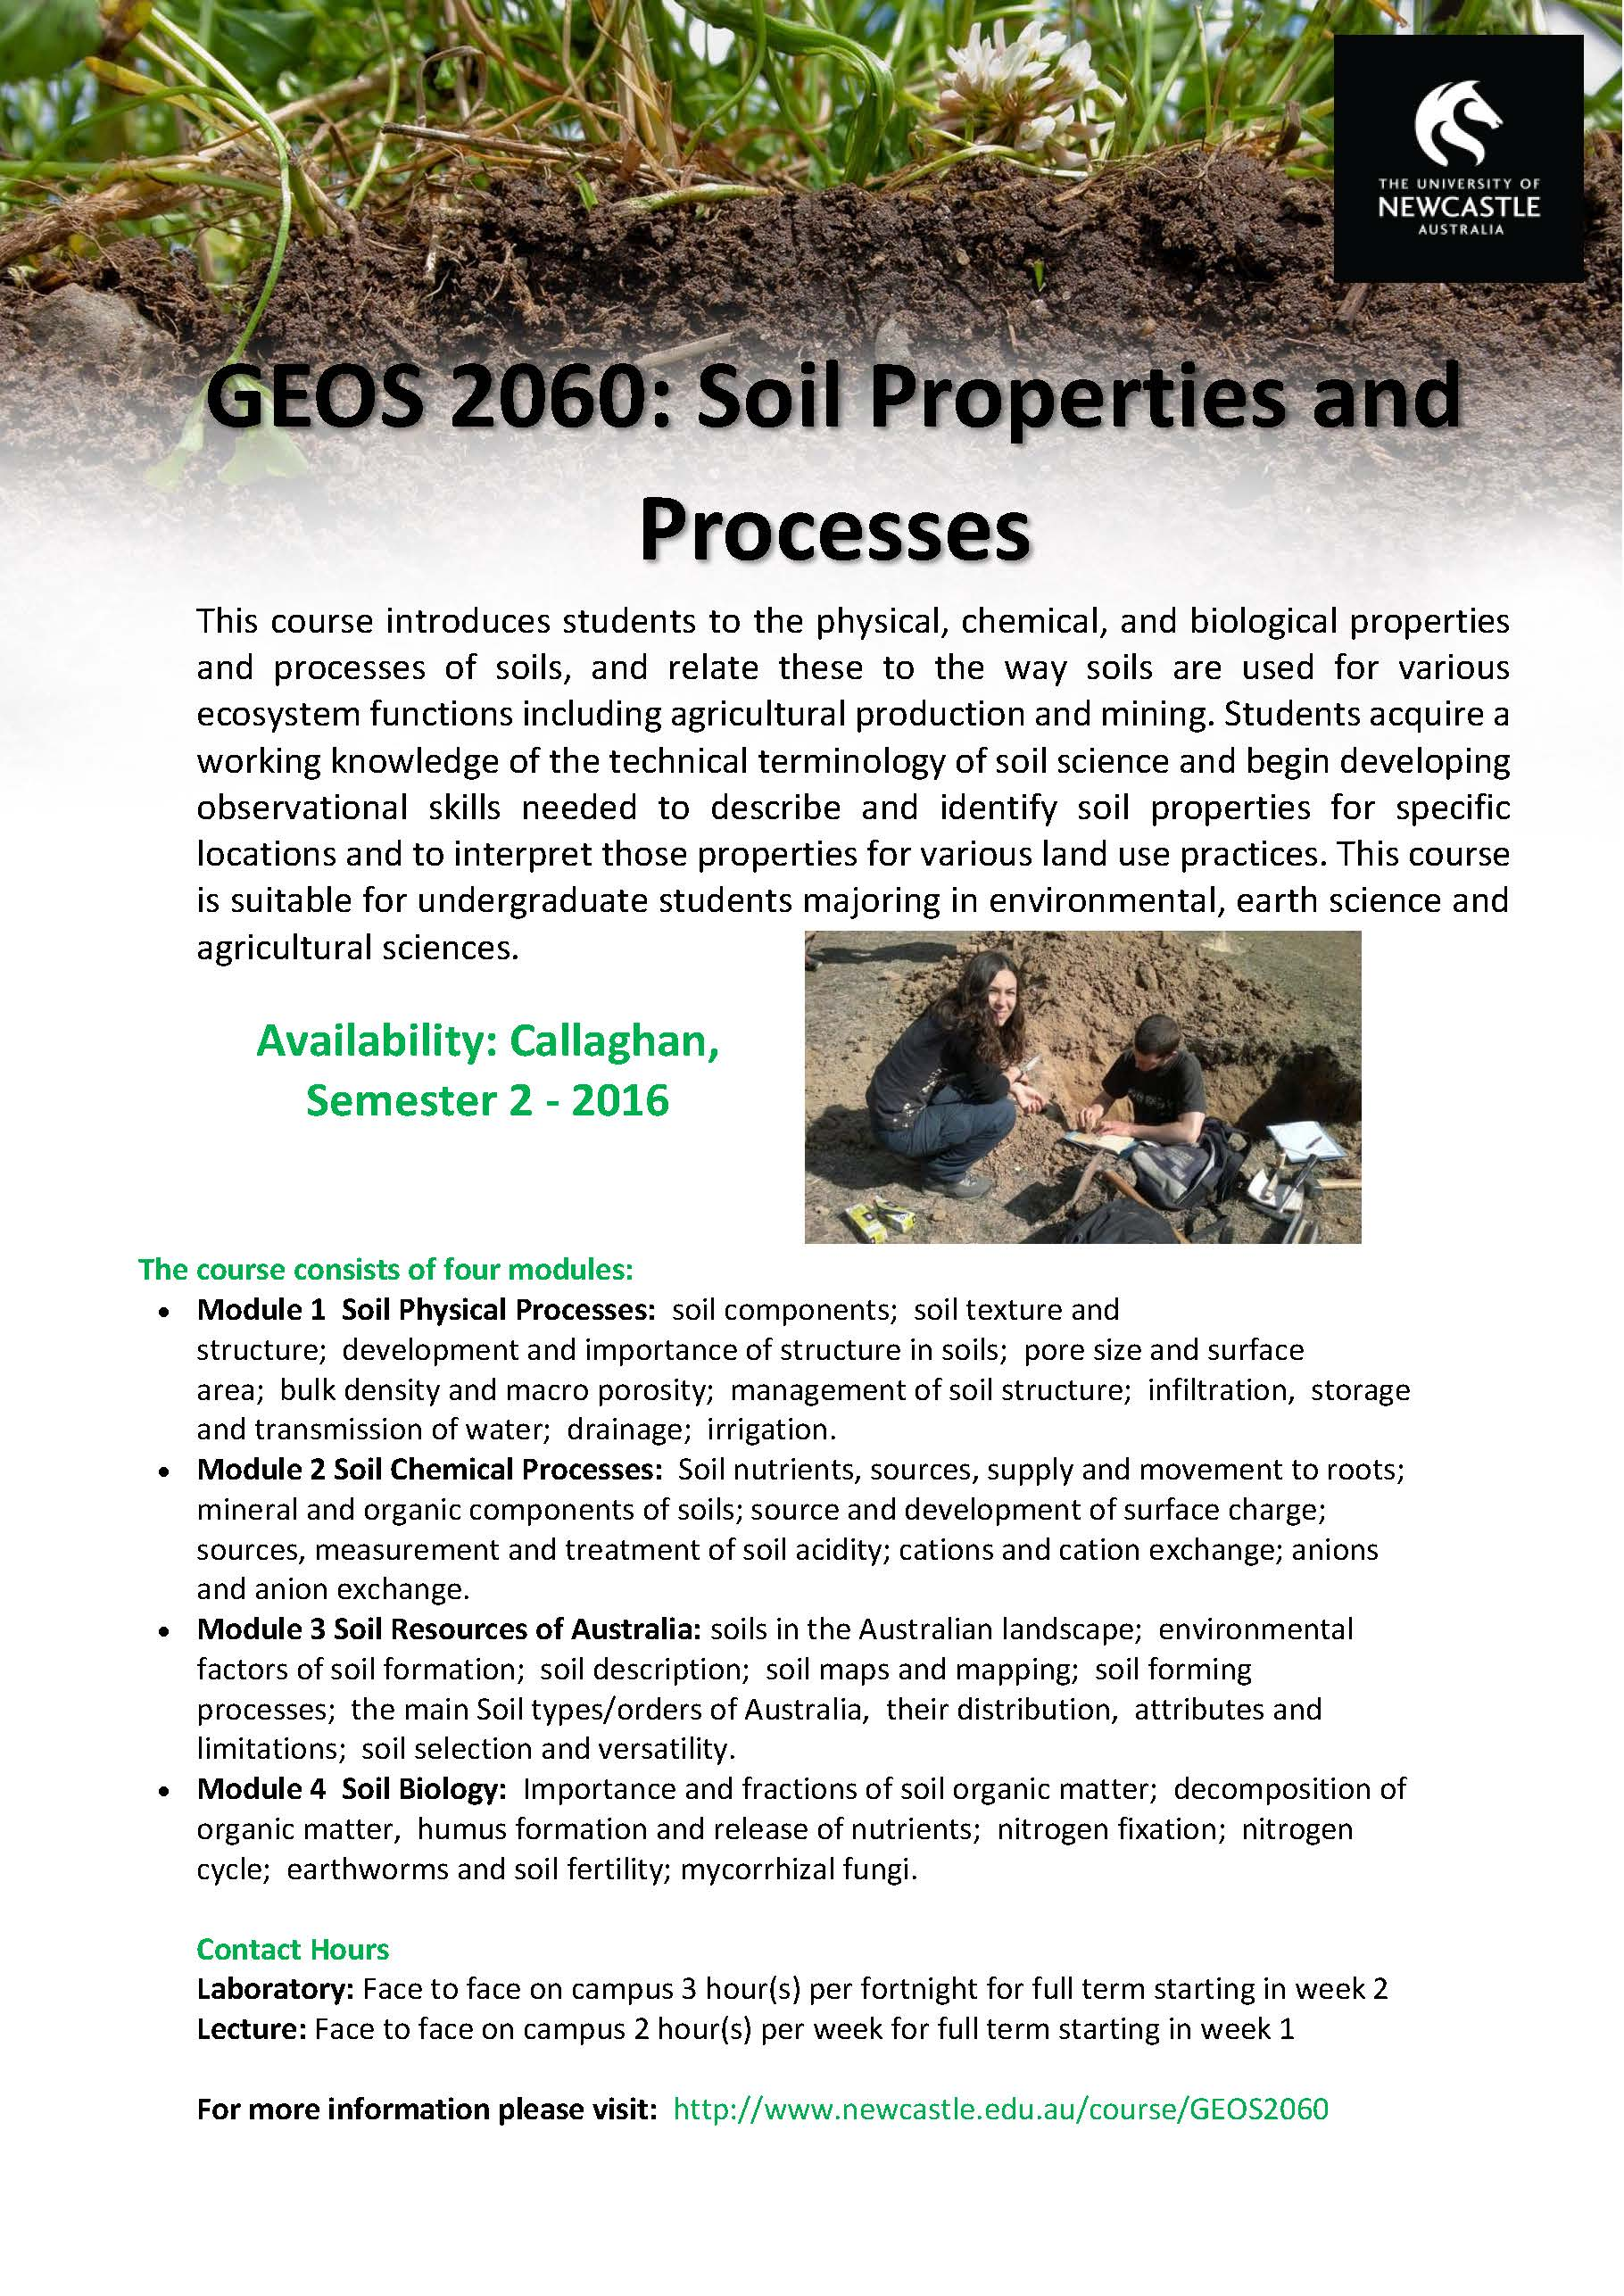 GEOS 2060 poster (002)